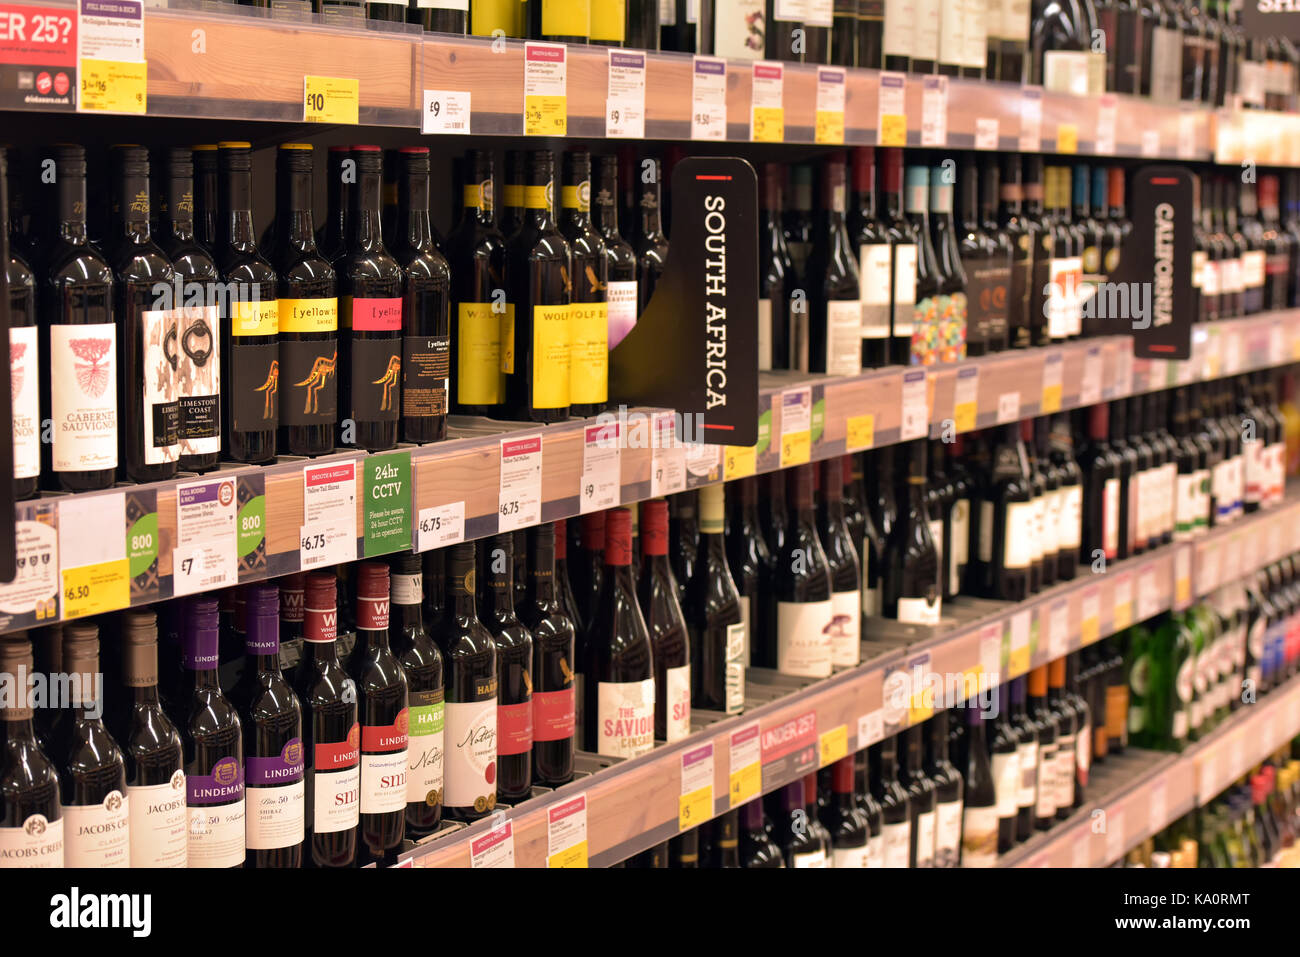 Bottles of wine for sale in a supermarket. Shelves full of red and white wine. - Stock Image